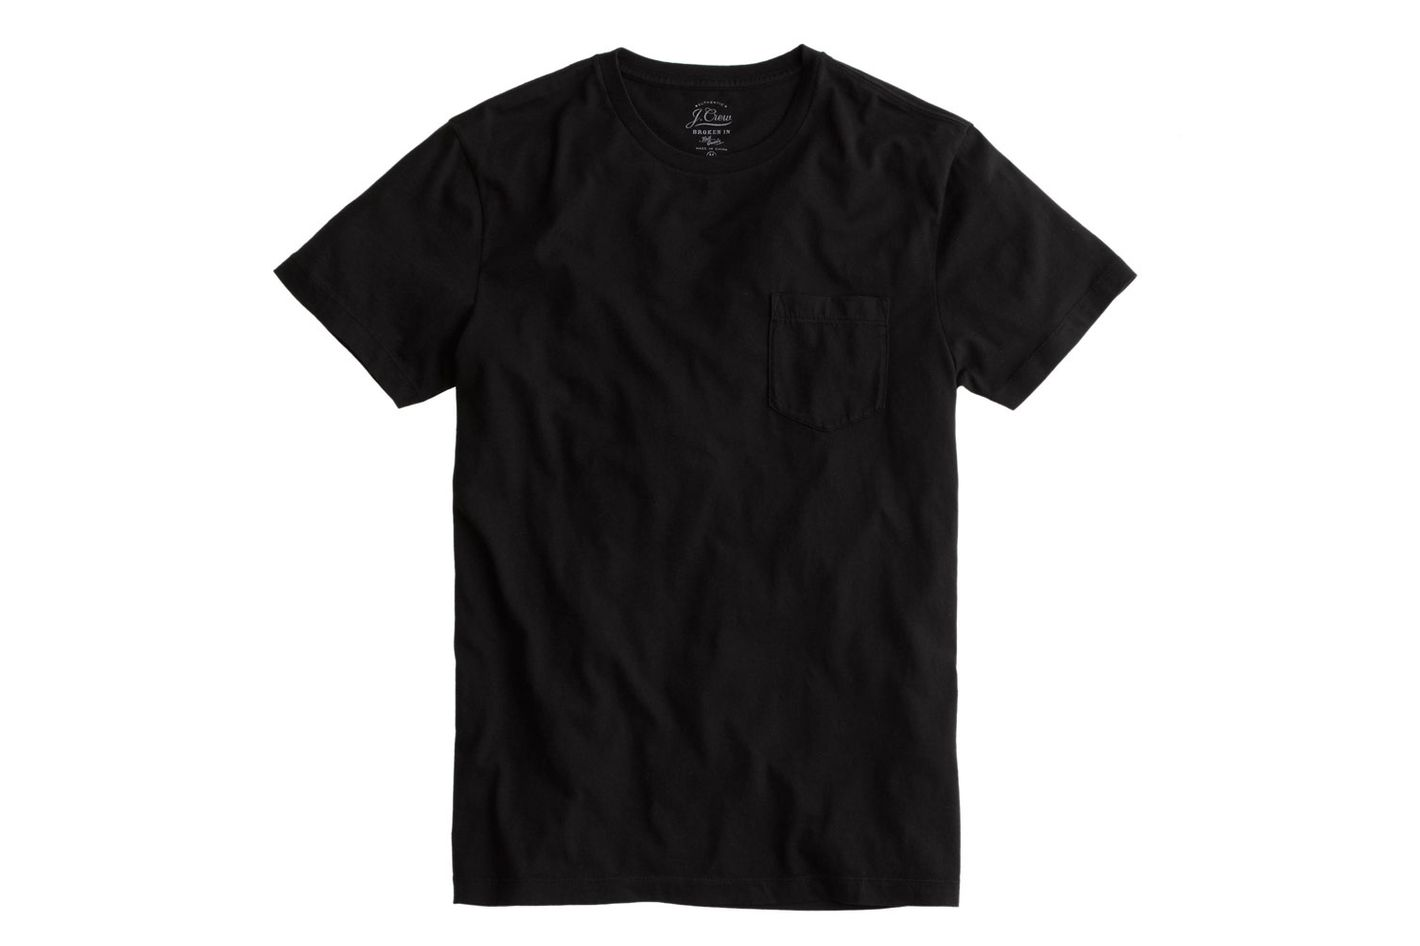 Black t shirt white collar - Share